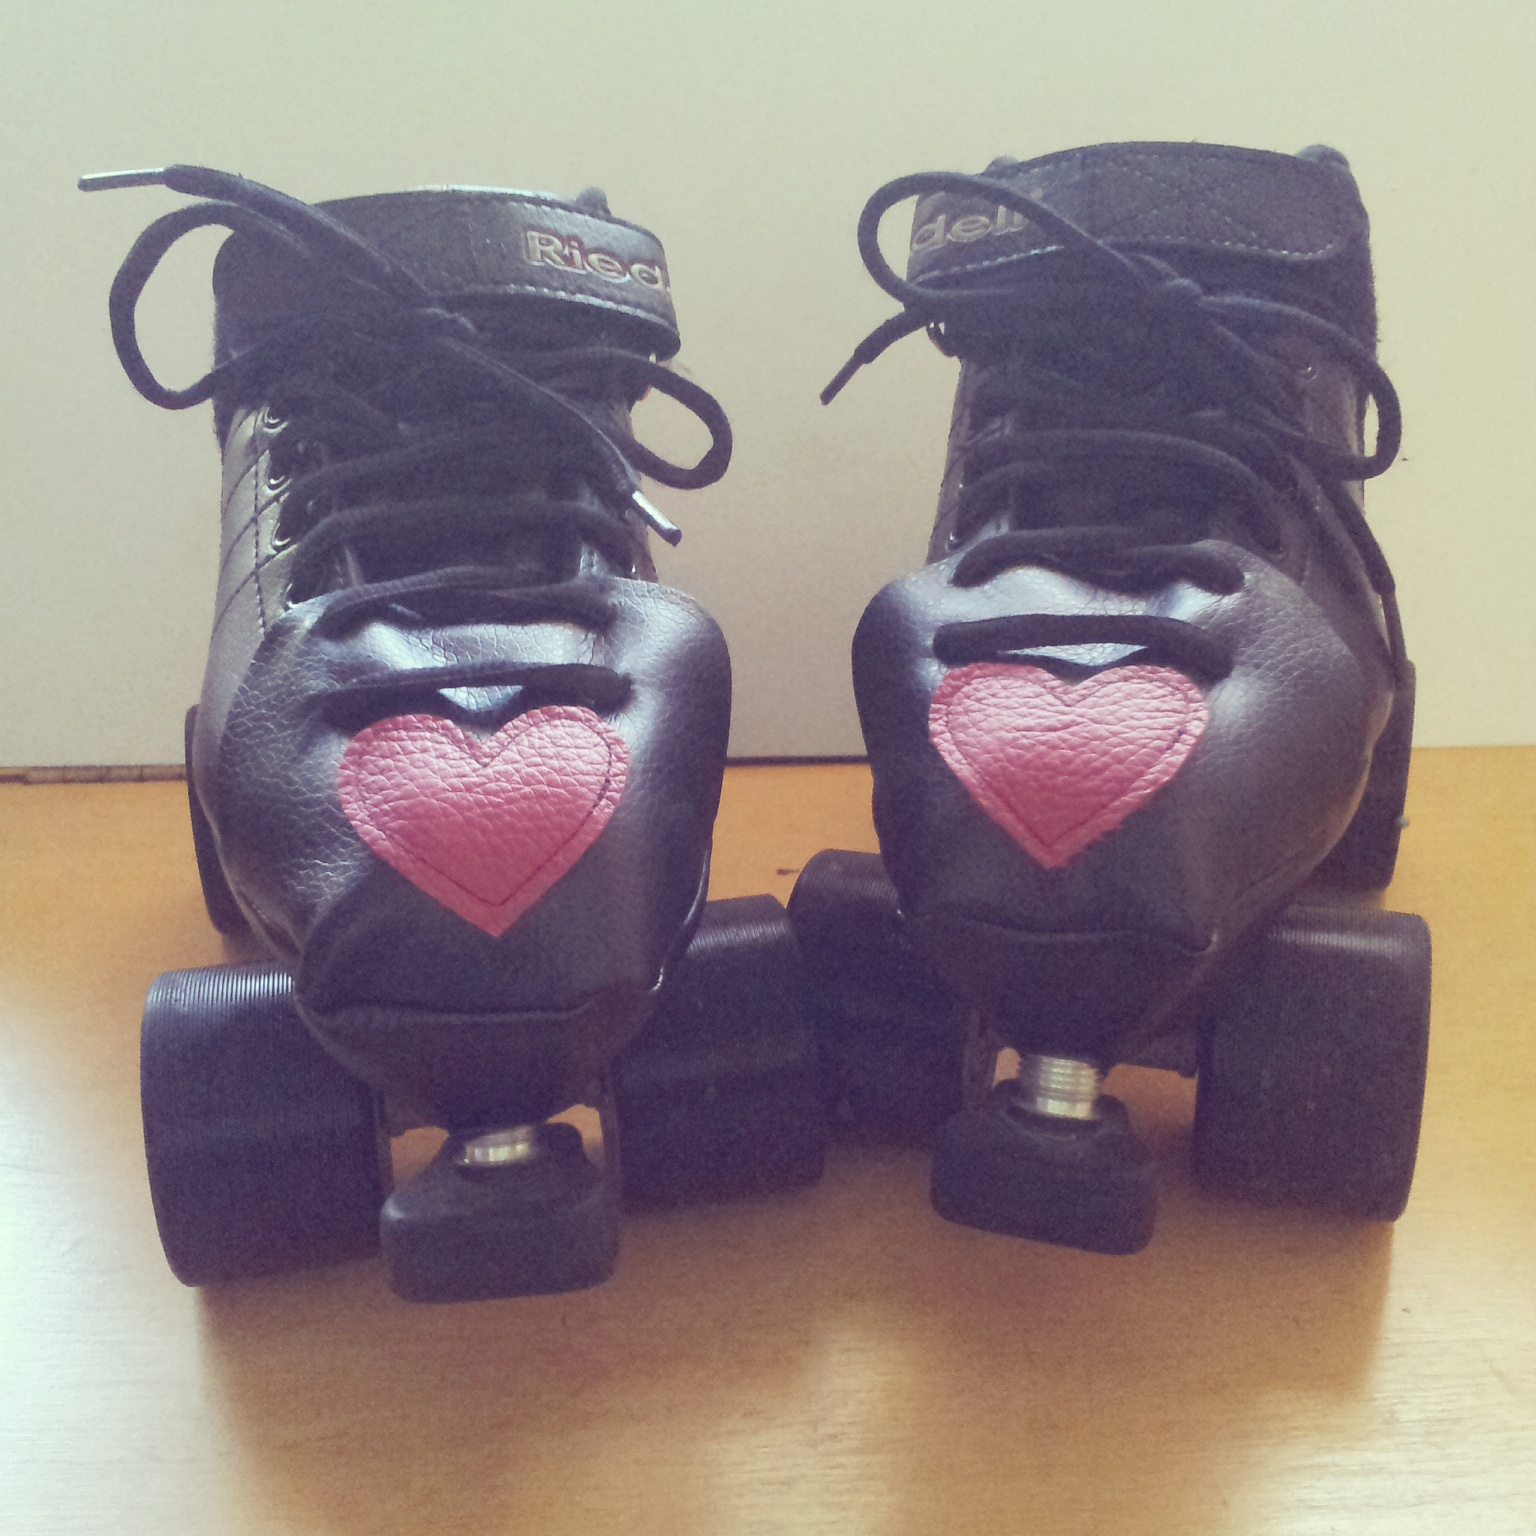 Roller skates book - The Front Of My Roller Skates Were Looking A Little Scratched Up So I Decided I Better Make Myself A Pair Of Toe Guards